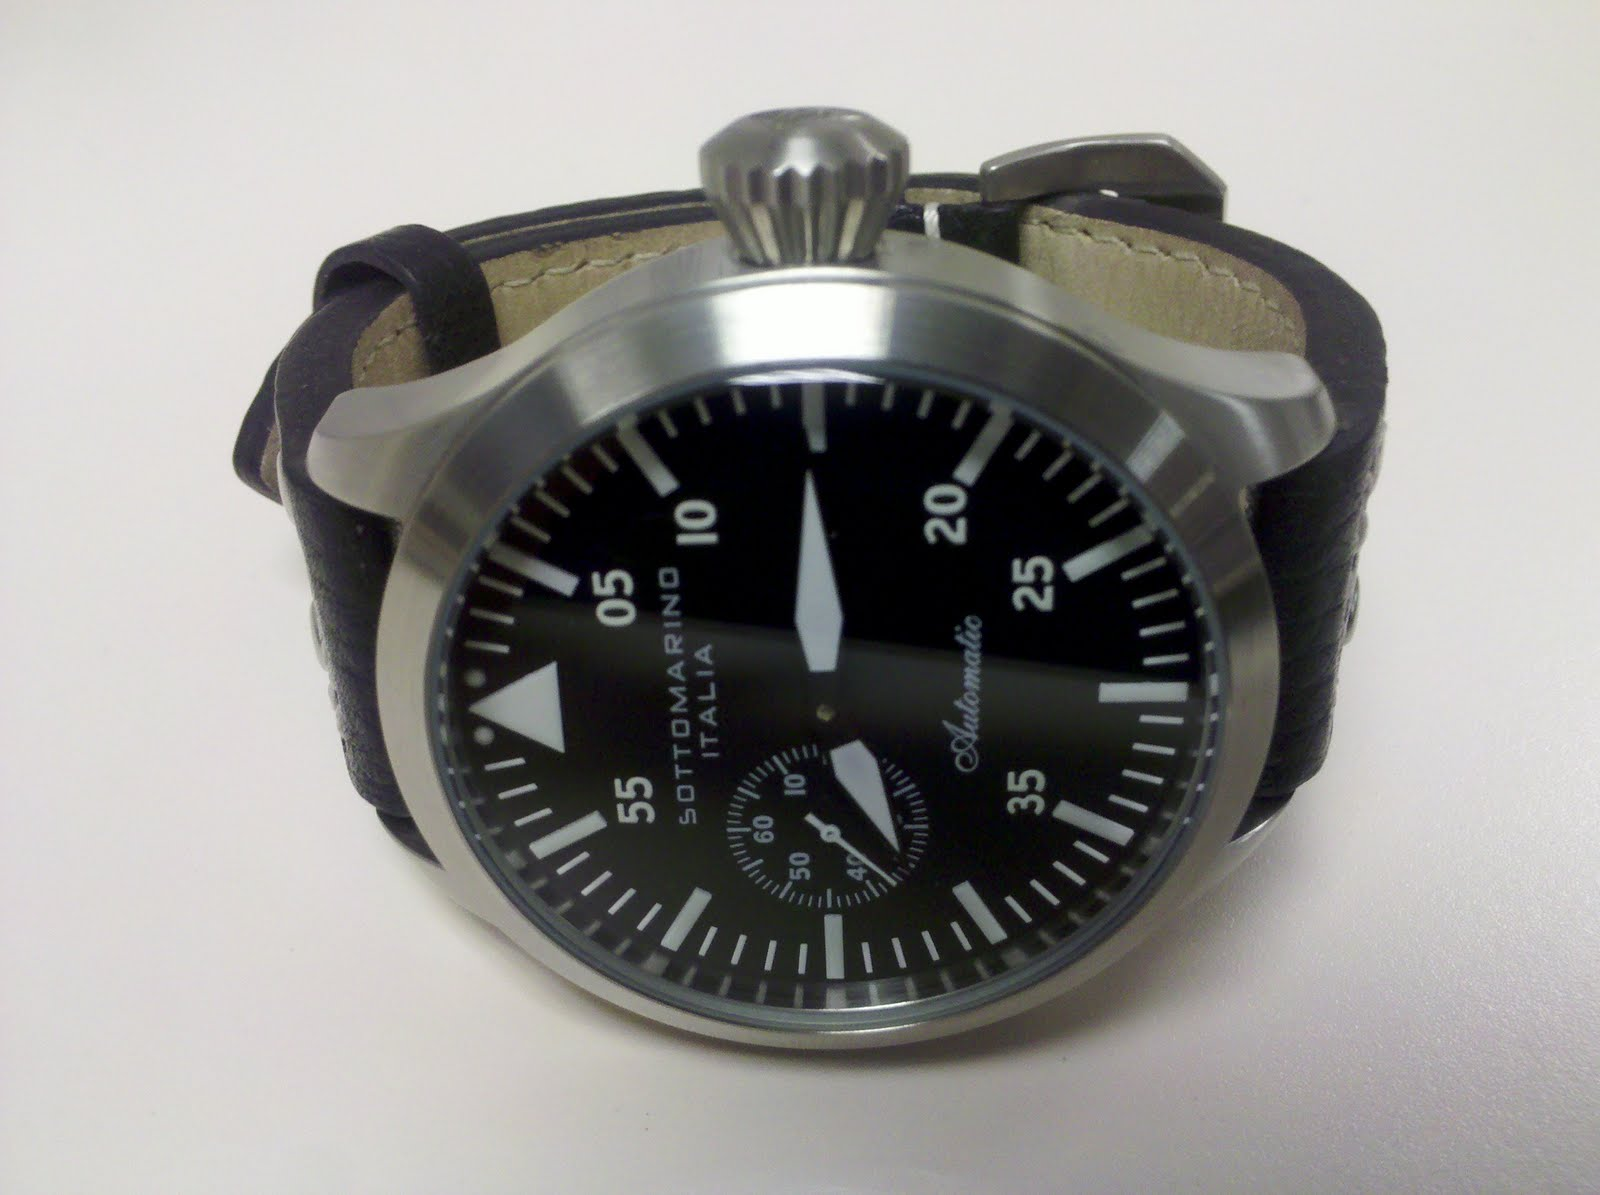 My watch of the day dec 6 2010 sottomarino pilotare for Sottomarino italia